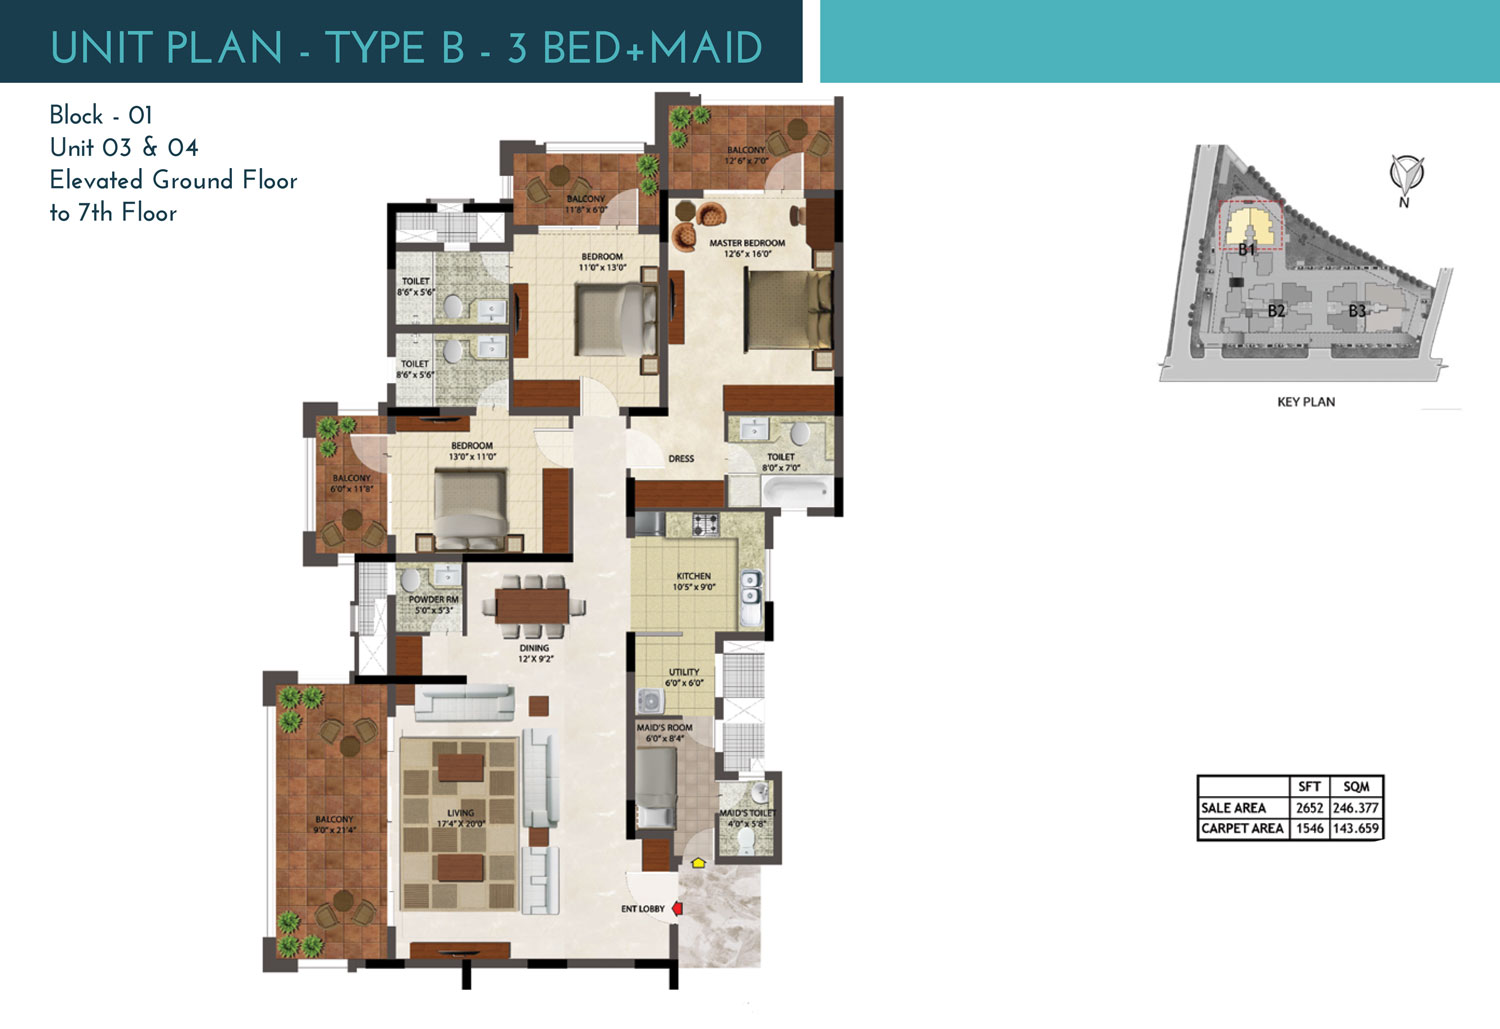 Type A2 - 3 Bed + Maid